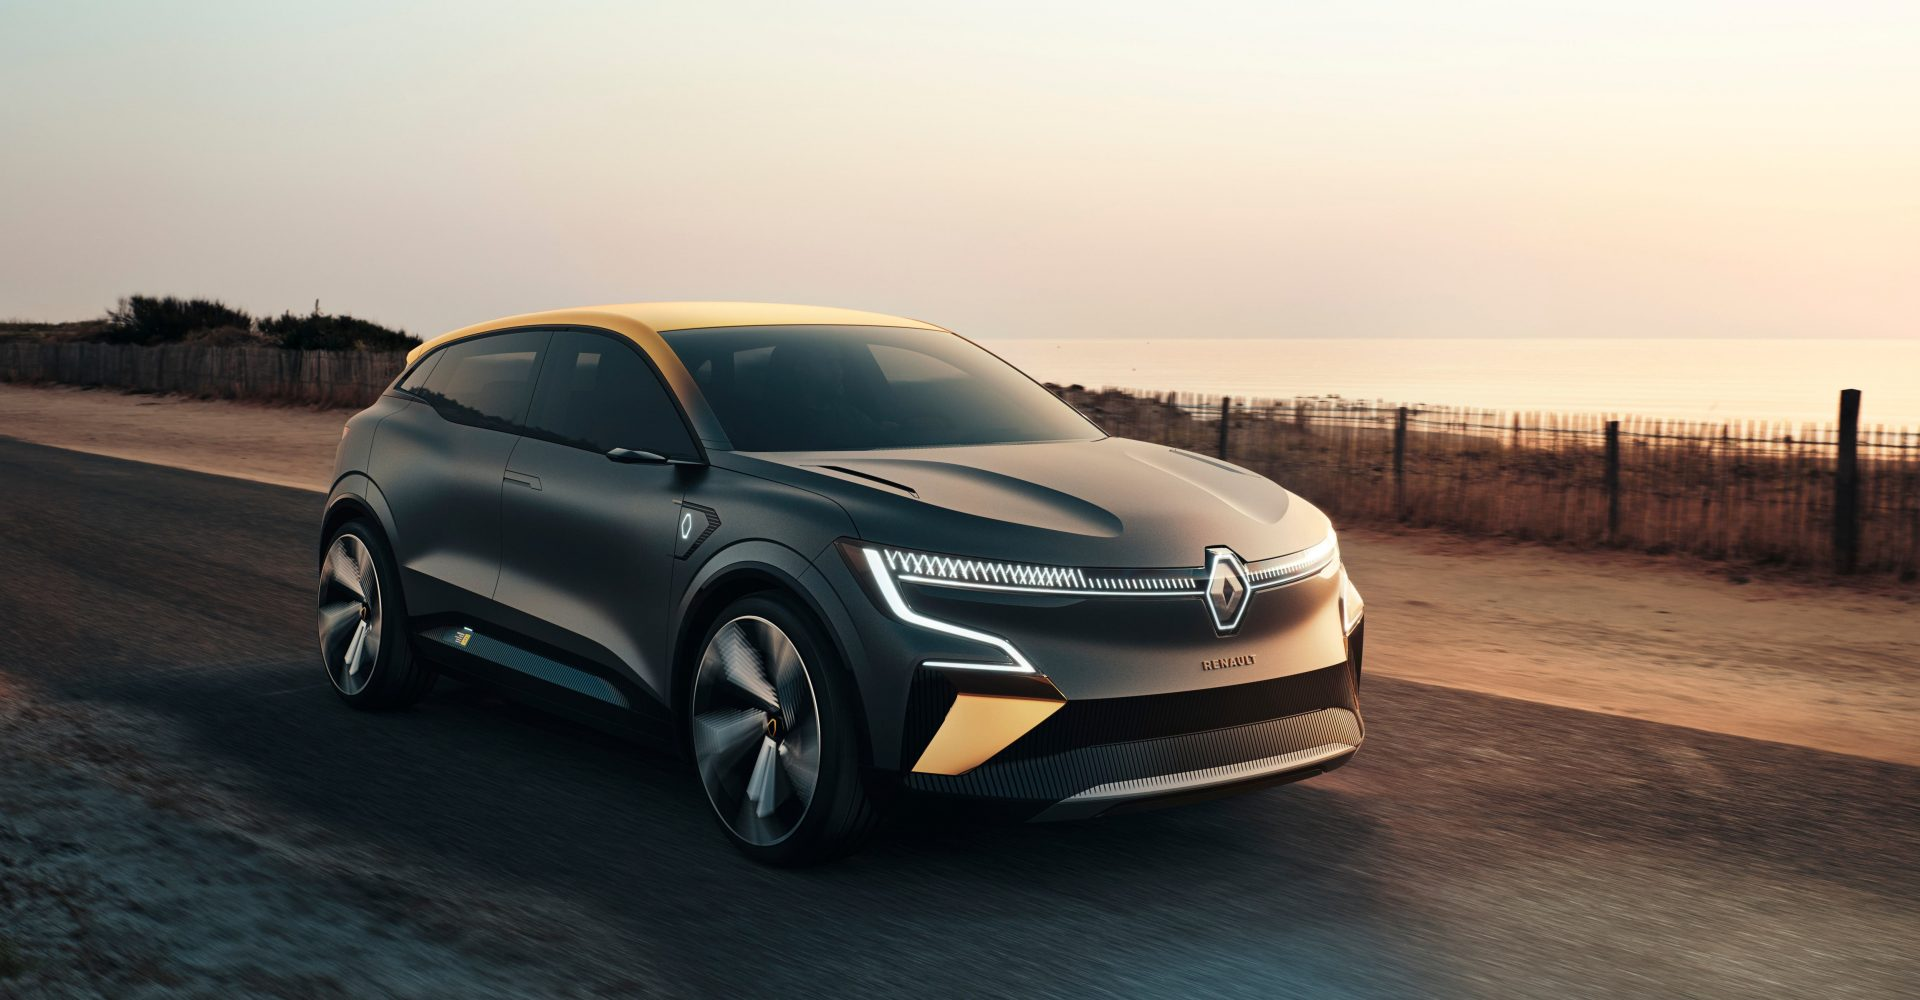 Renault signals future EV intent with Megane eVision concept